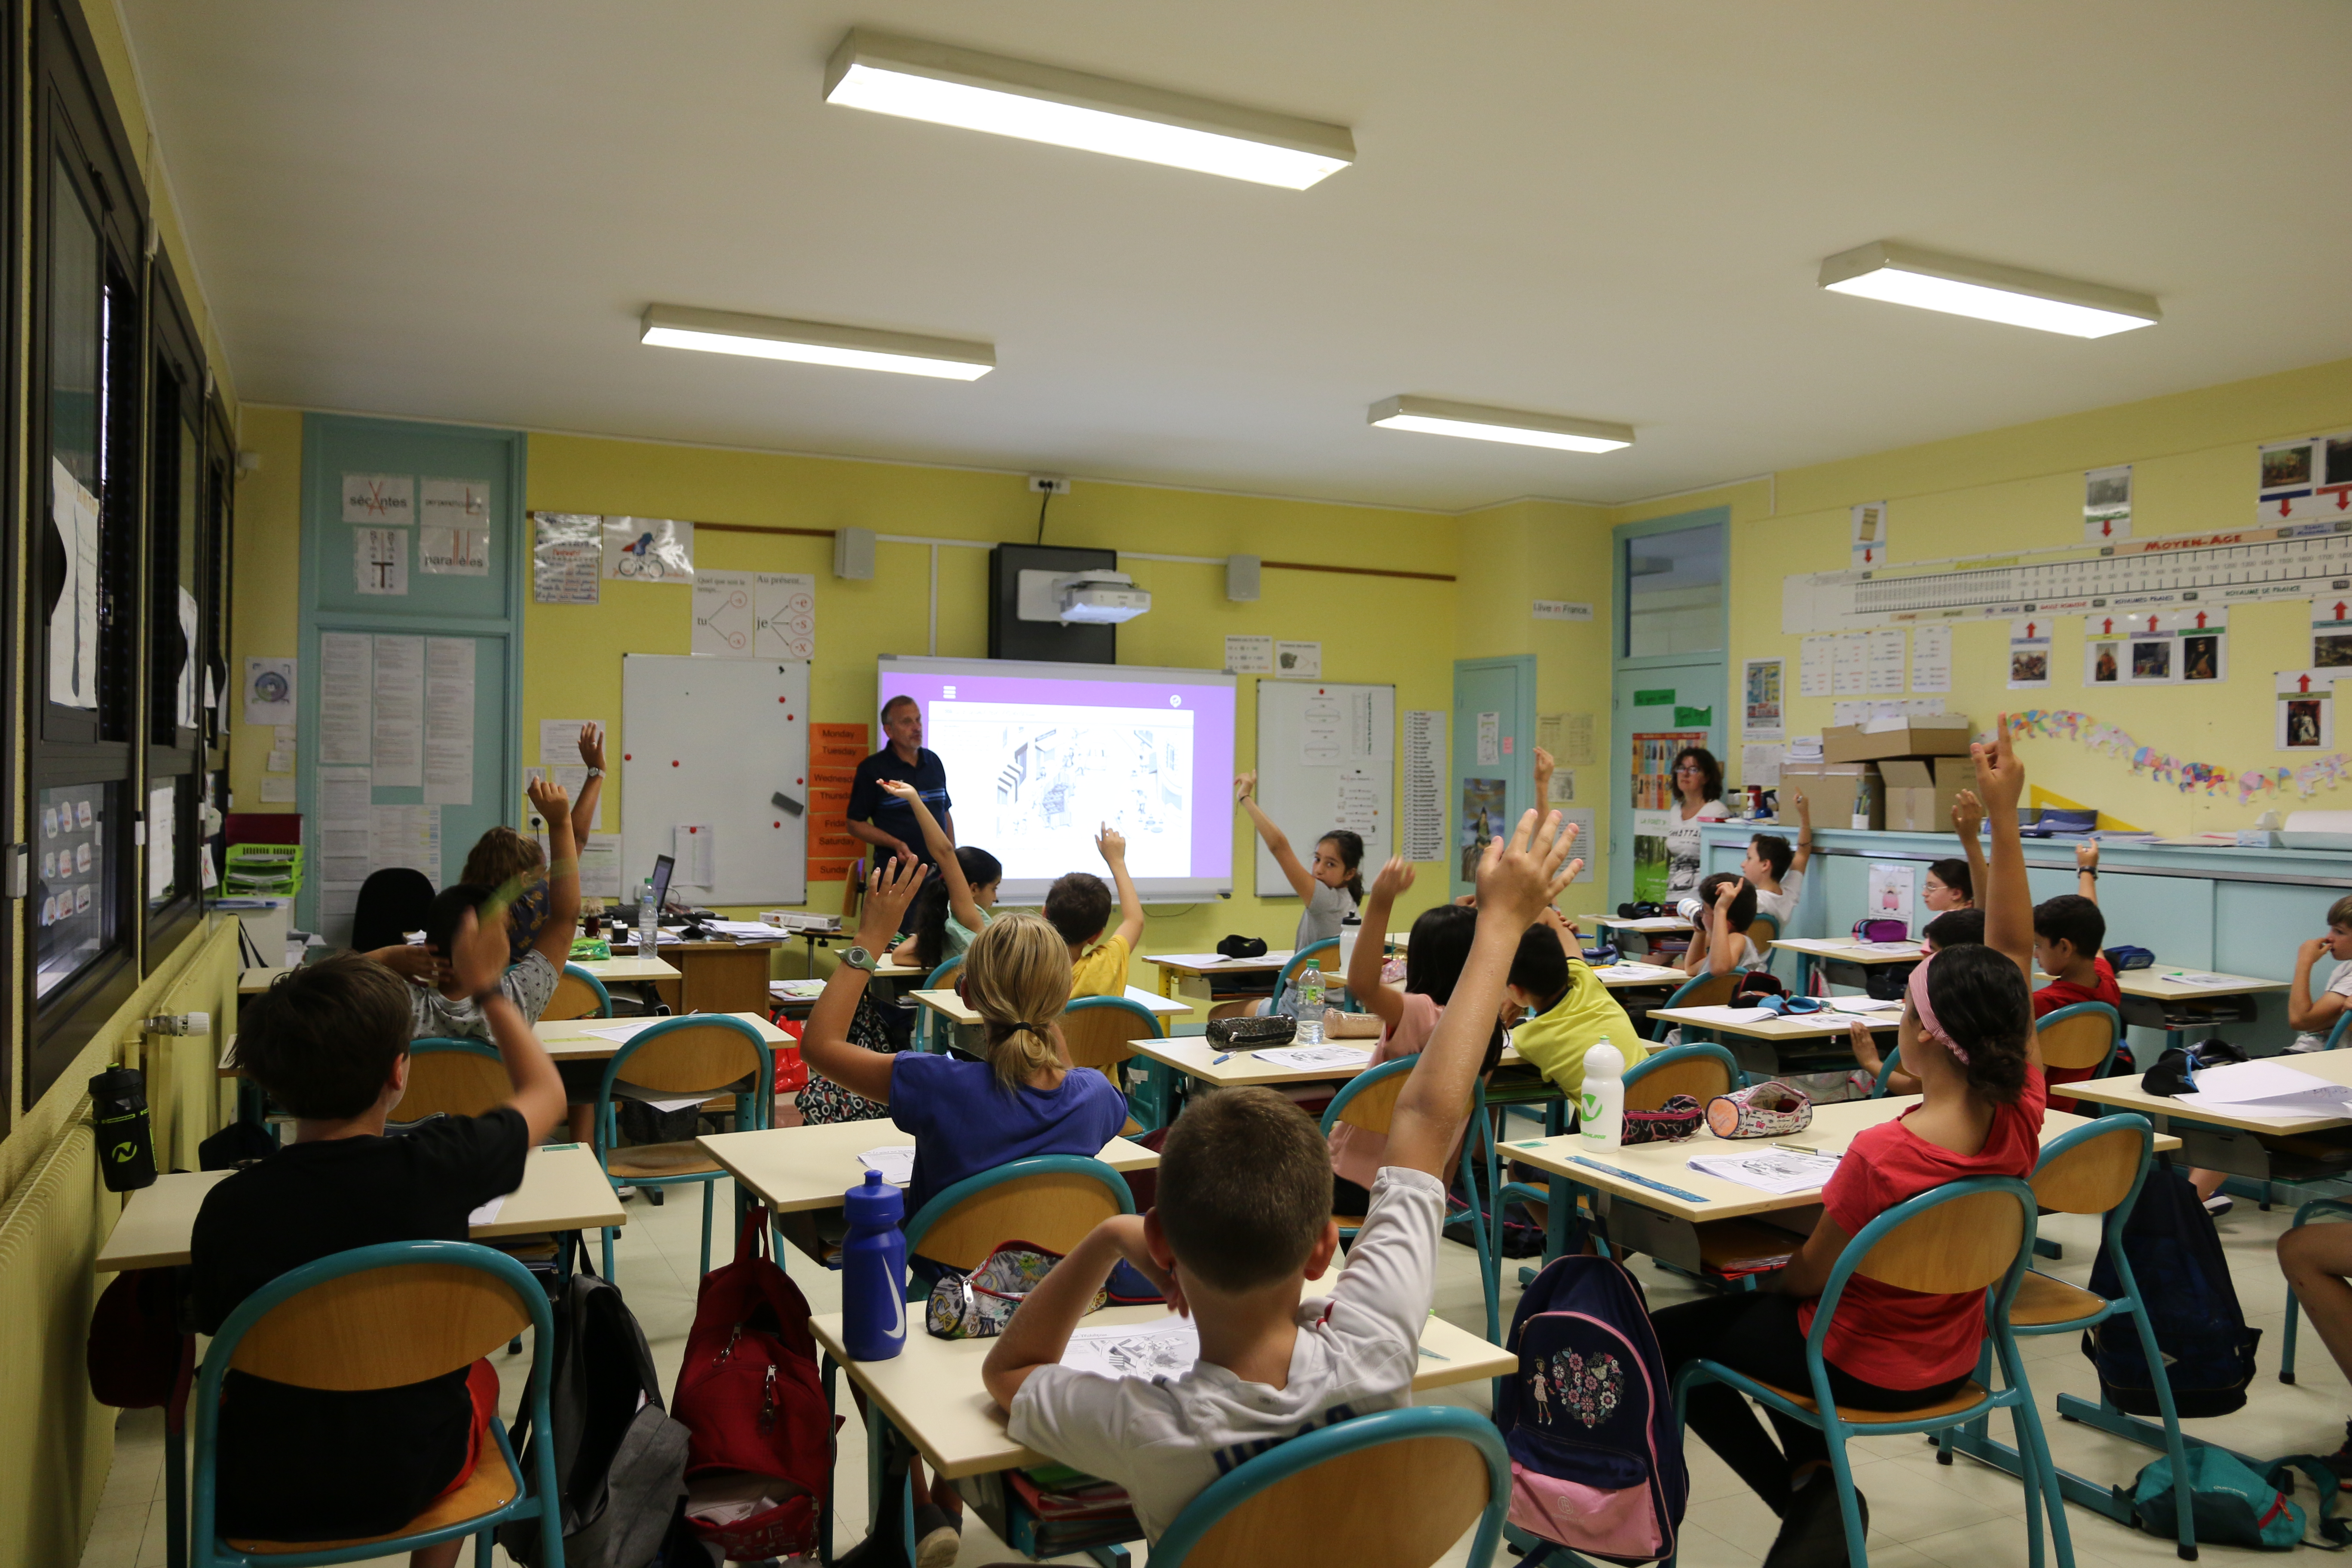 Scolaire - Securite routiere 01.JPG